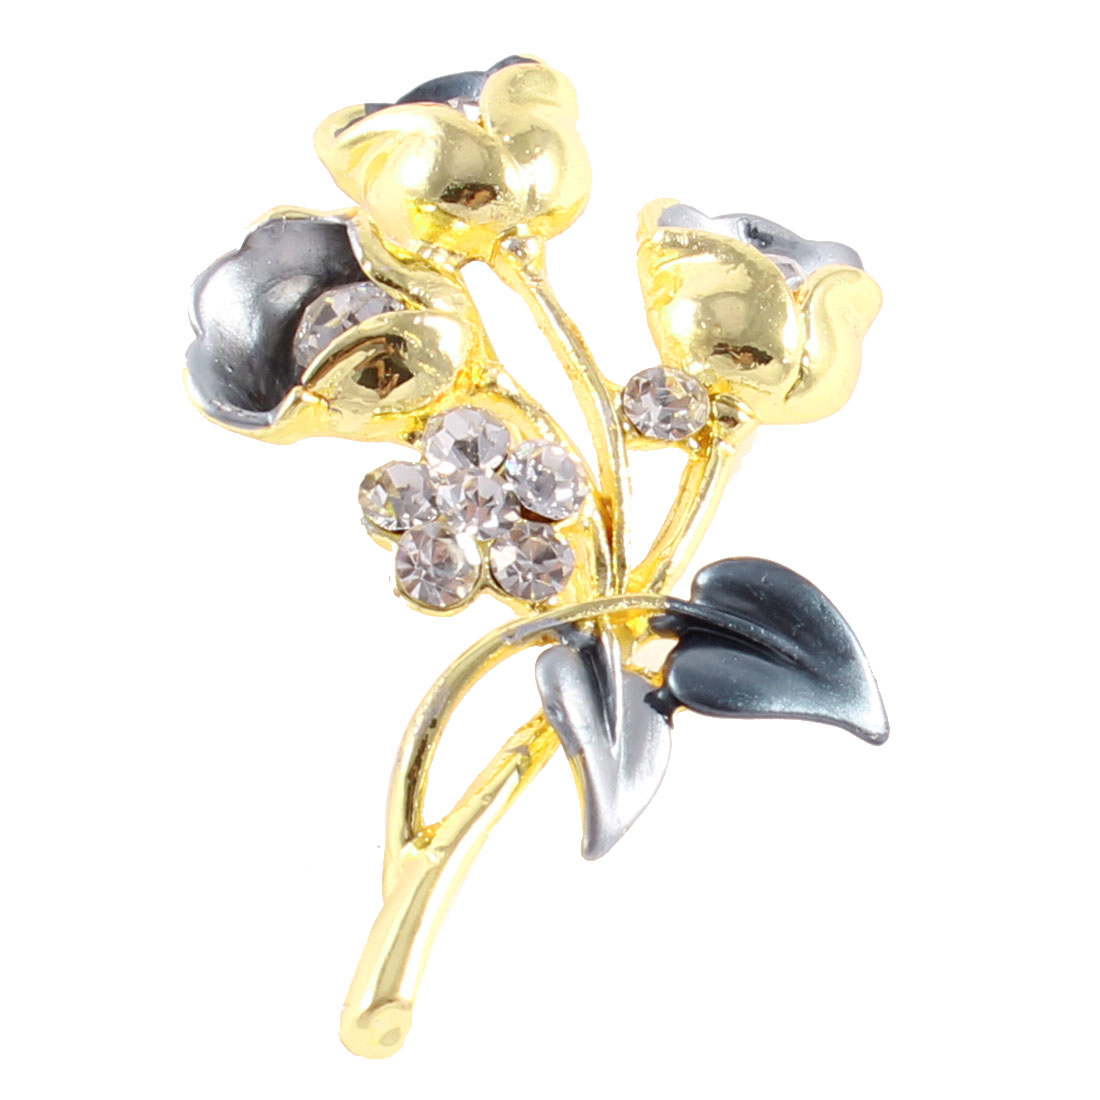 Shiny Rhinestone Detail Metal Florals Shape Safety Pin Brooch Gold Tone